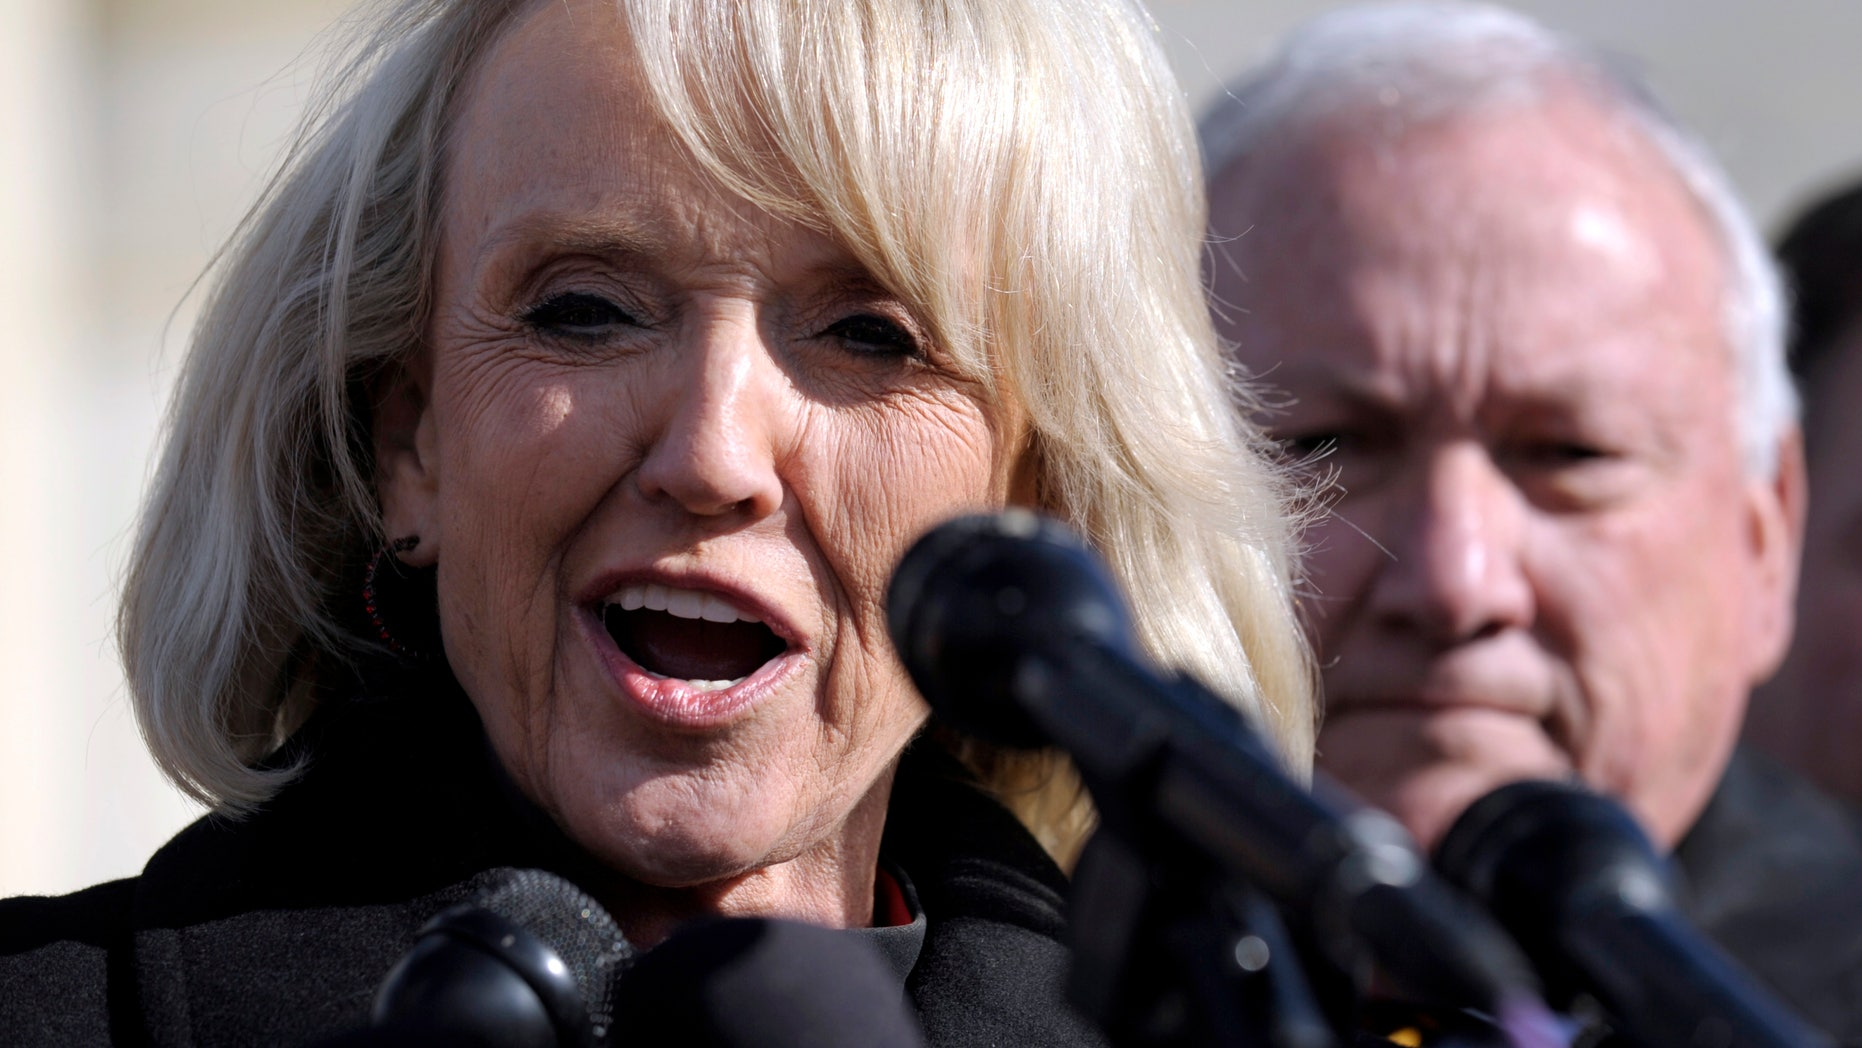 Arizona Gov. Jan Brewer speaks to reporters outside the Supreme Court in Washington, Wednesday, Dec. 8, 2010. (AP)